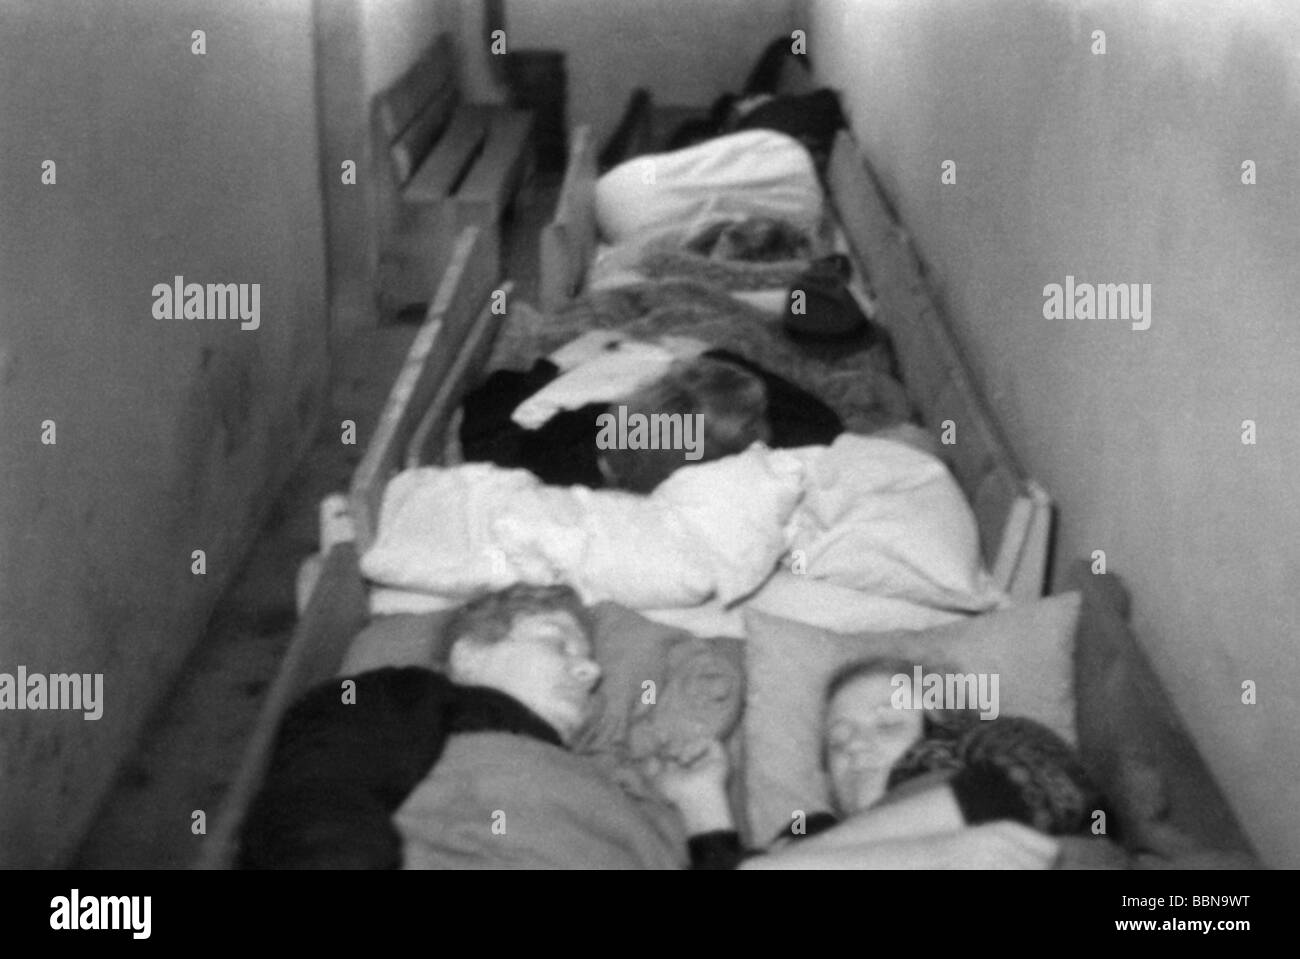 events, Second World War / WWII, aerial warfare, Germany, civilians sleeping in an air raid shelter, circa 1944, - Stock Image